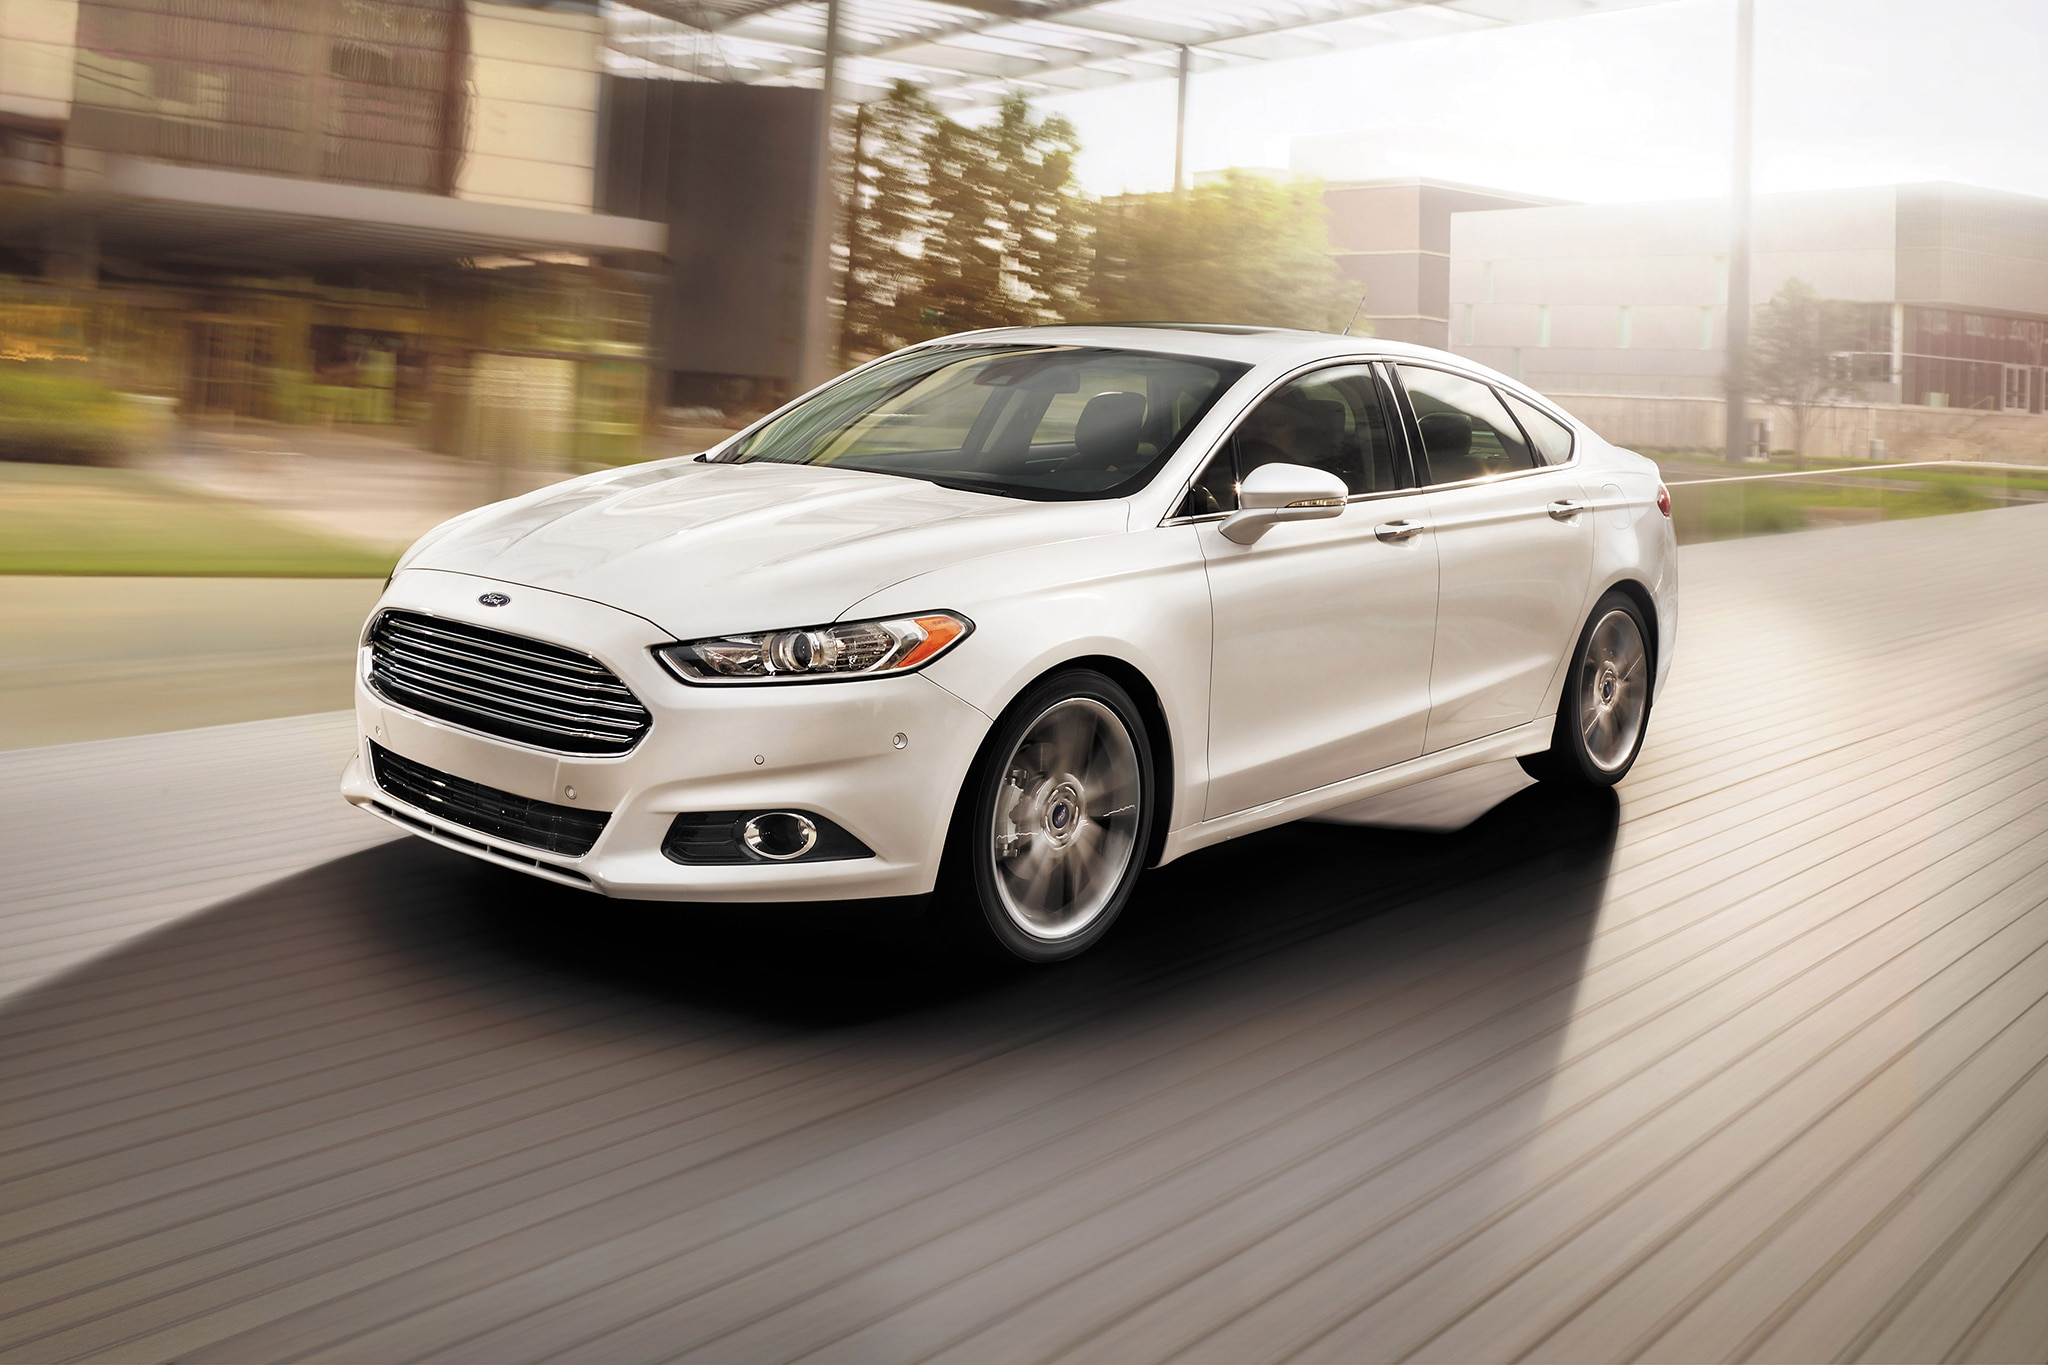 2014 Ford Fusion Three Quarters 11